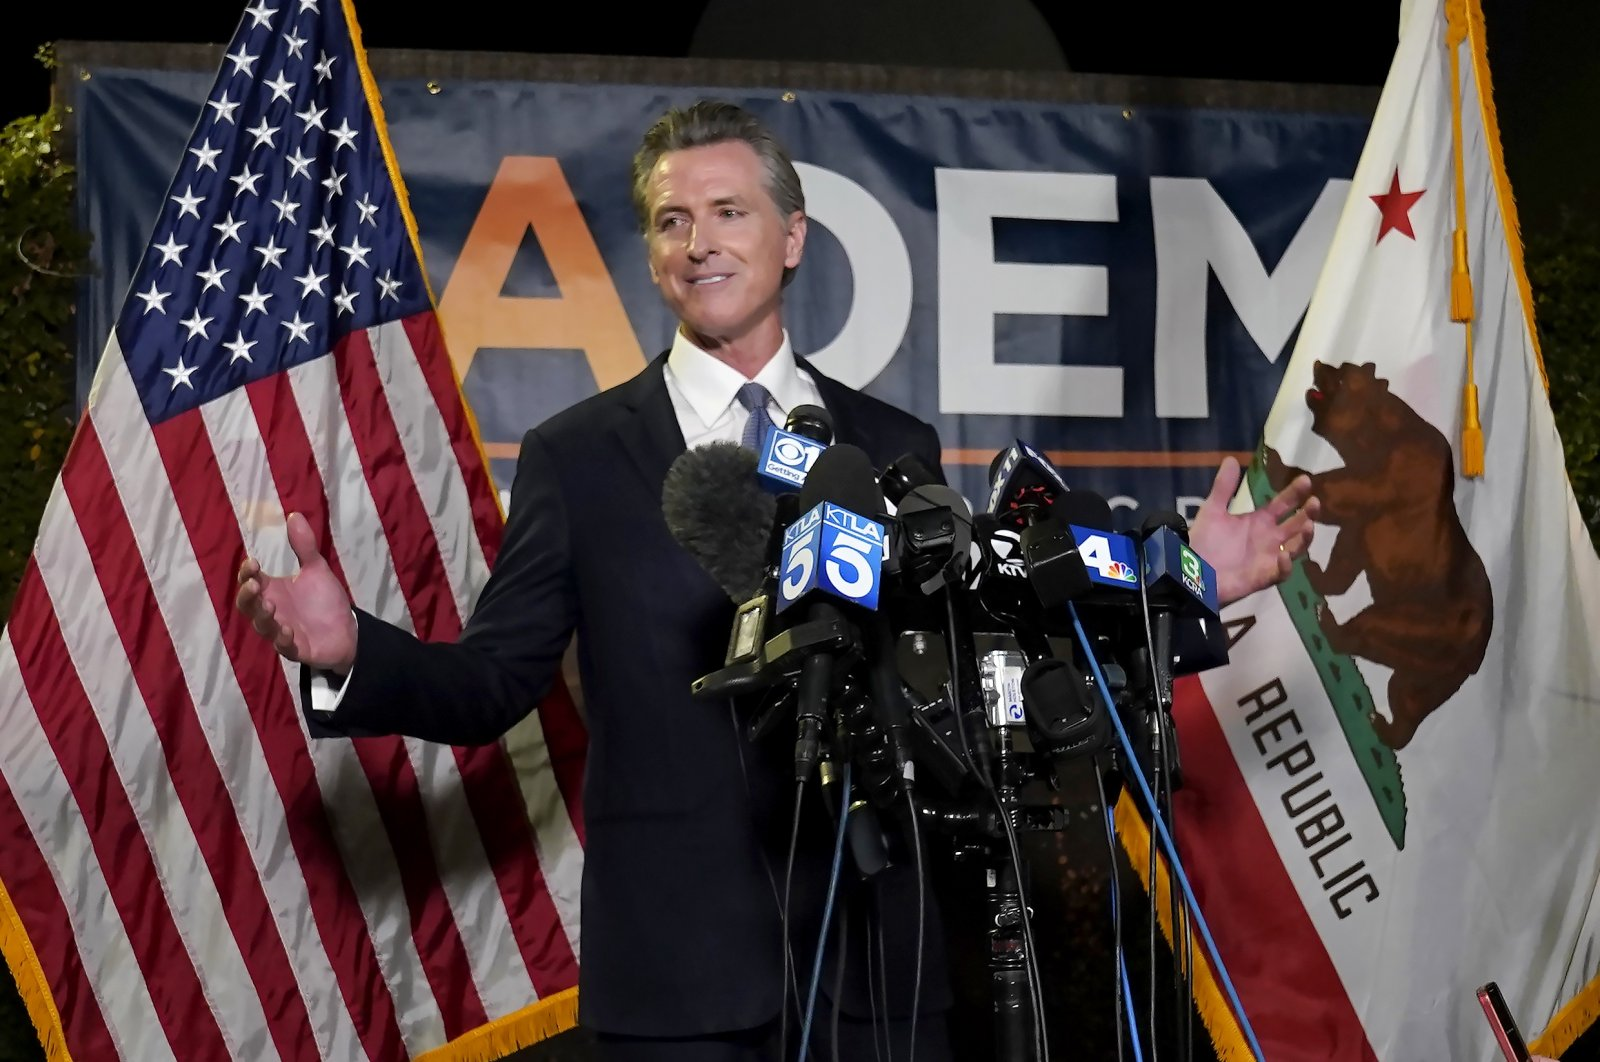 California Gov. Gavin Newsom addresses reporters after beating back the recall attempt that aimed to remove him from office, at the John L. Burton California Democratic Party headquarters in Sacramento, California, U.S., Sept. 14, 2021. (AP Photo)